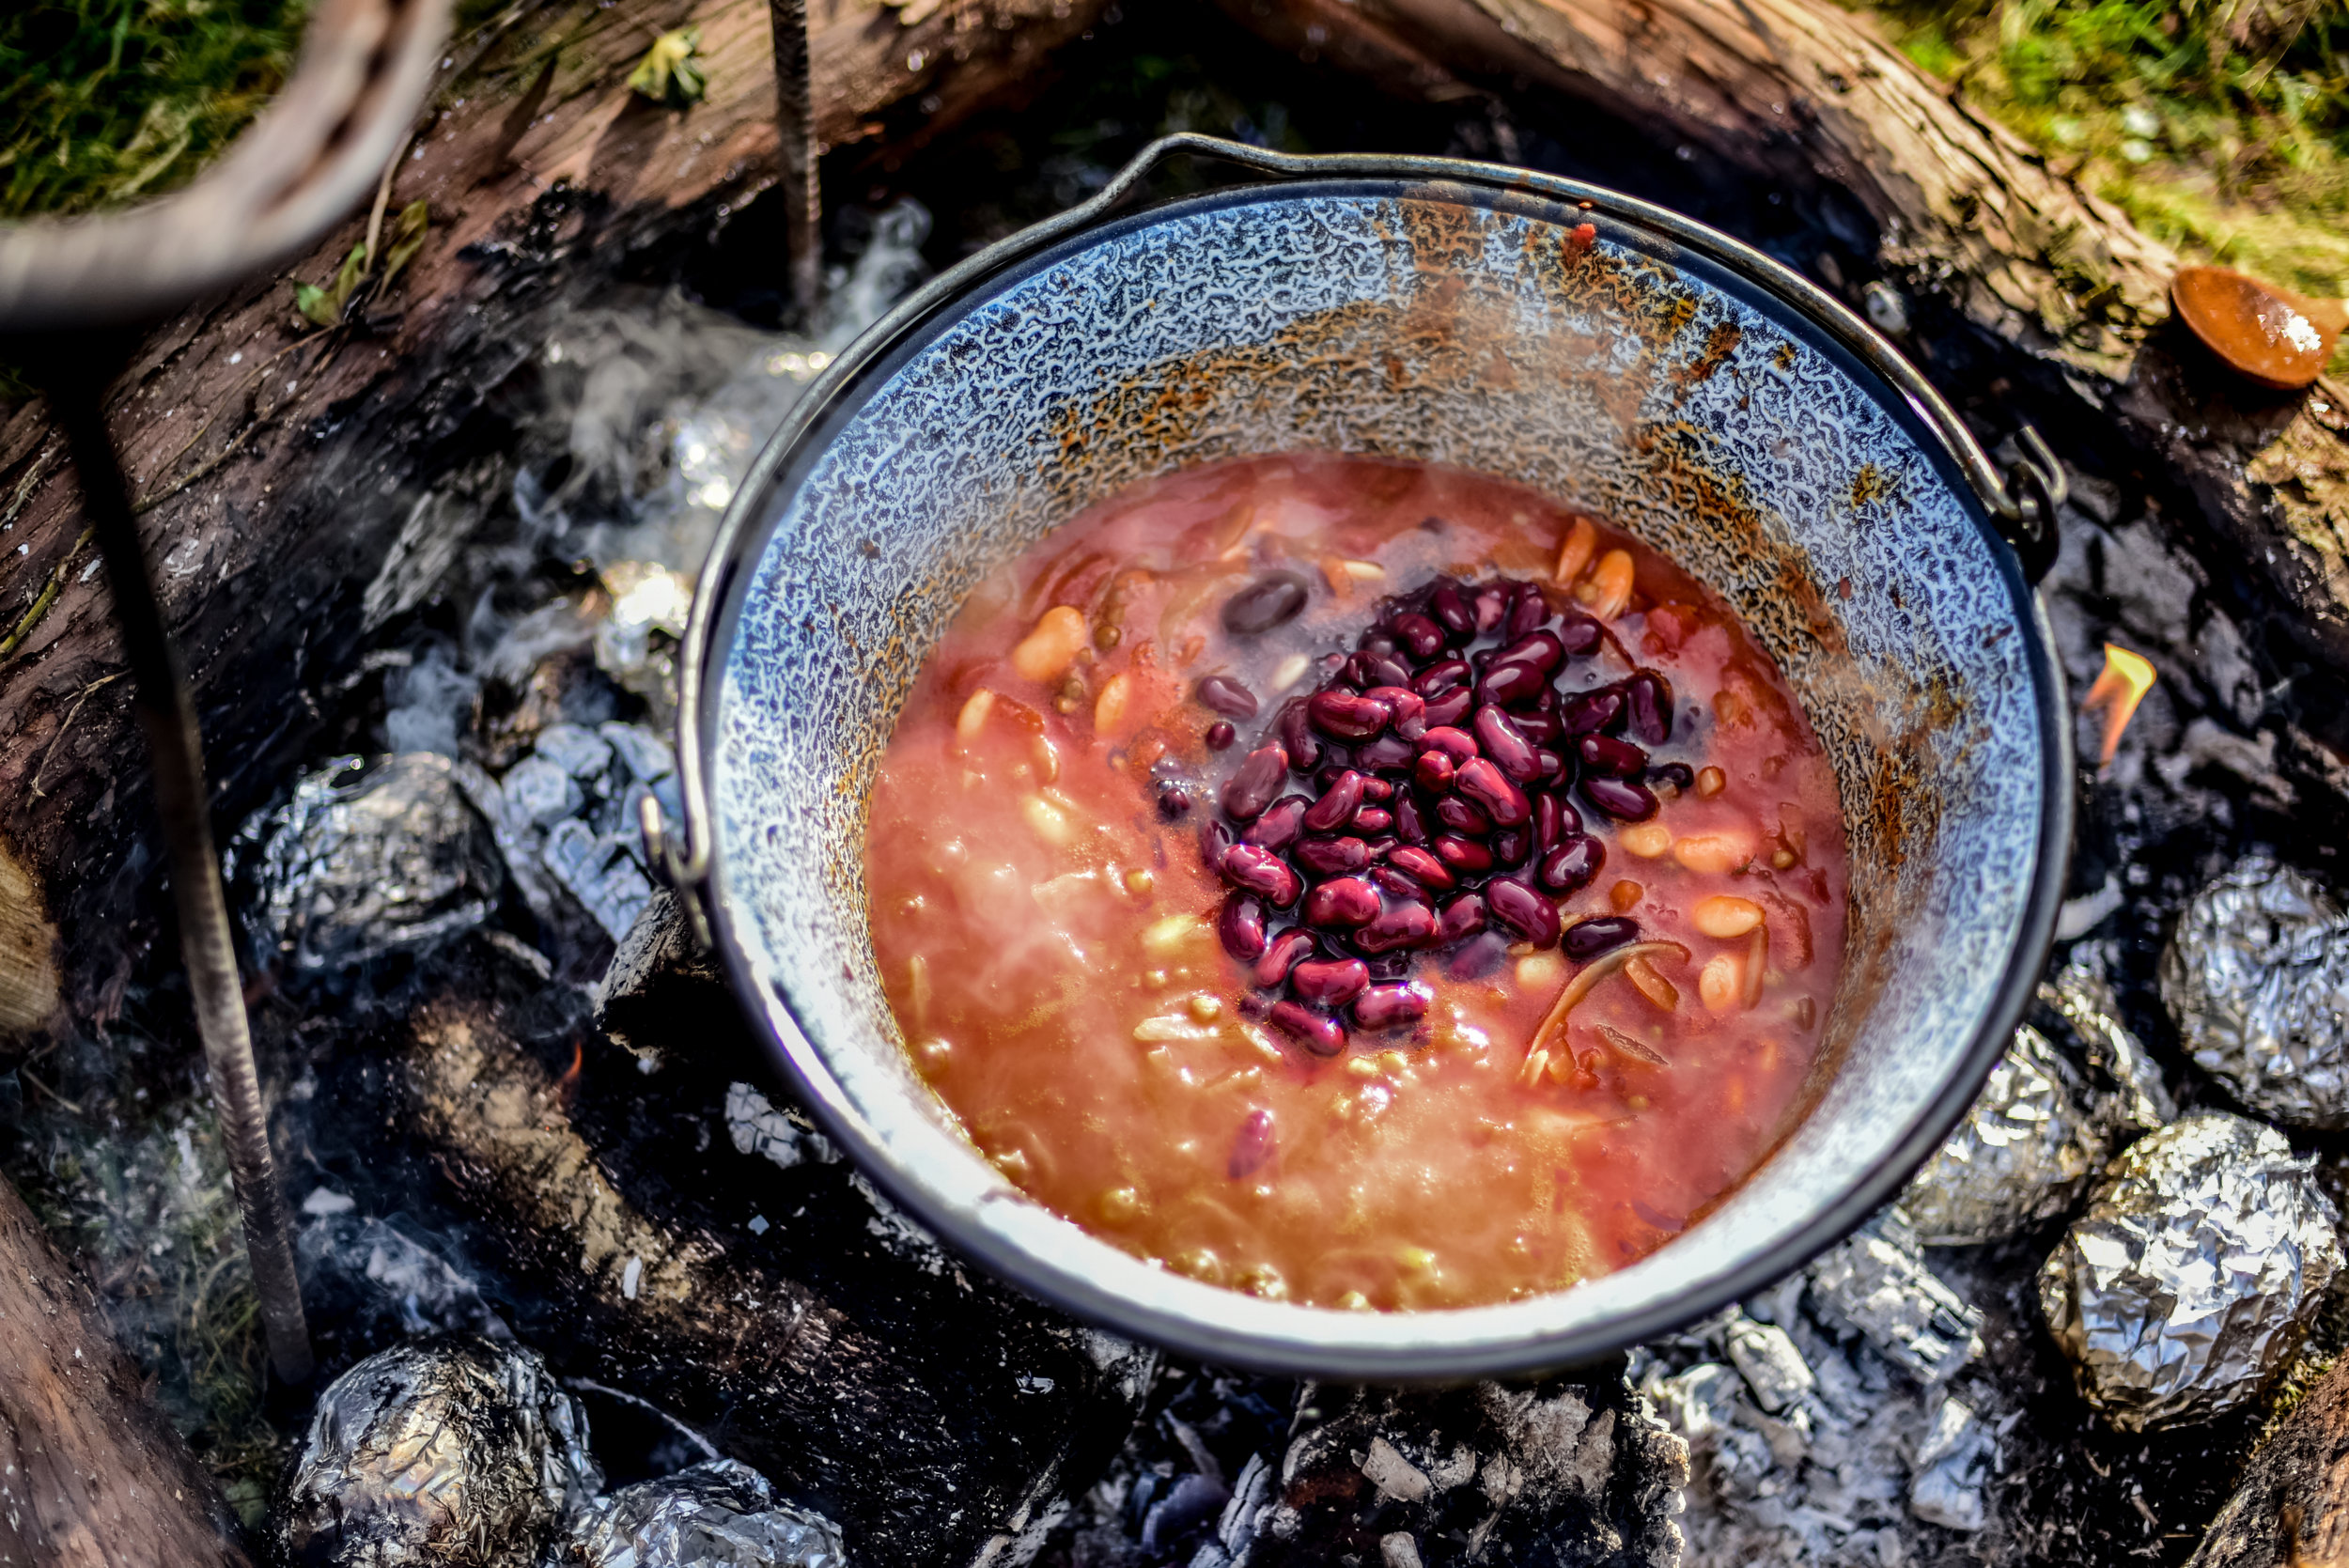 Go Wild Forest School Level 3 Training campfire cooking beans.jpg